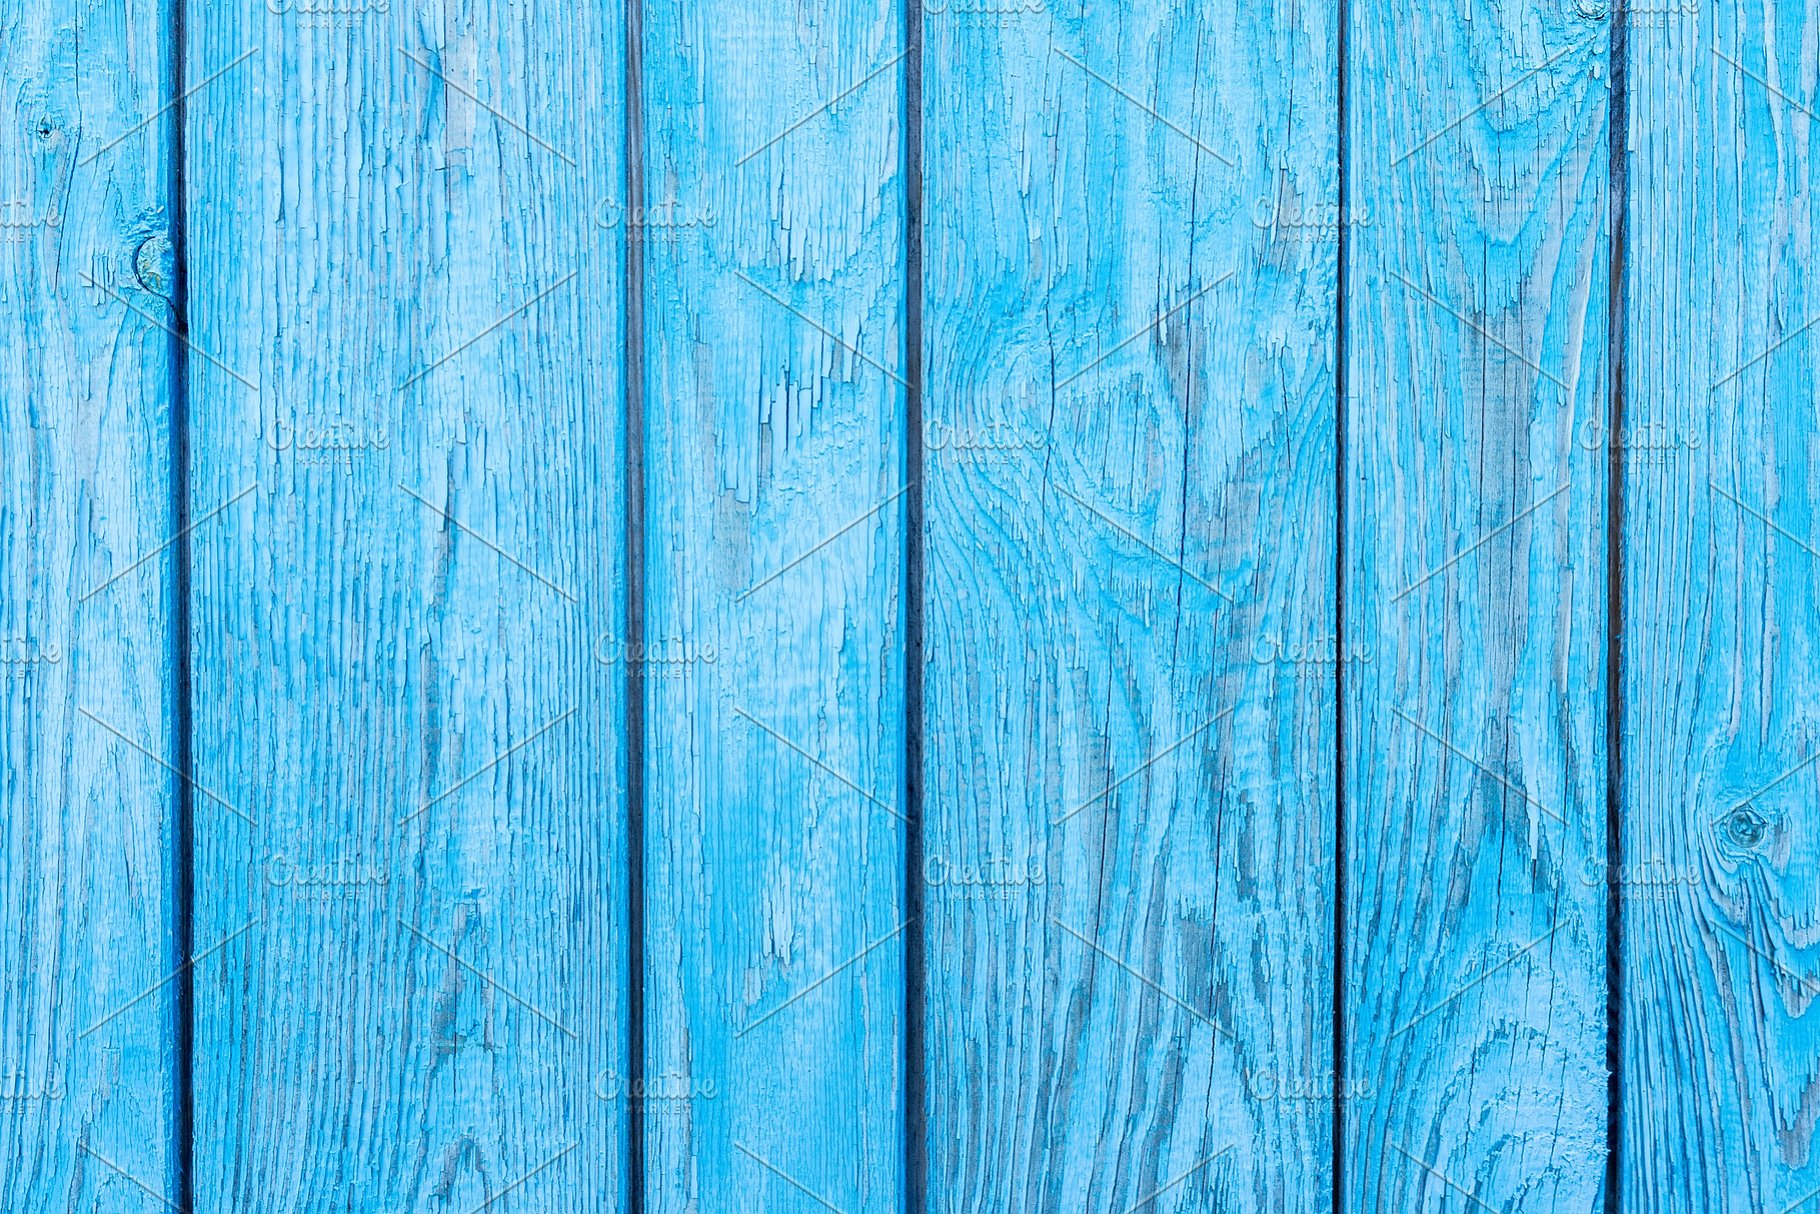 Wooden texture of blue color | High-Quality Abstract Stock Photos ...